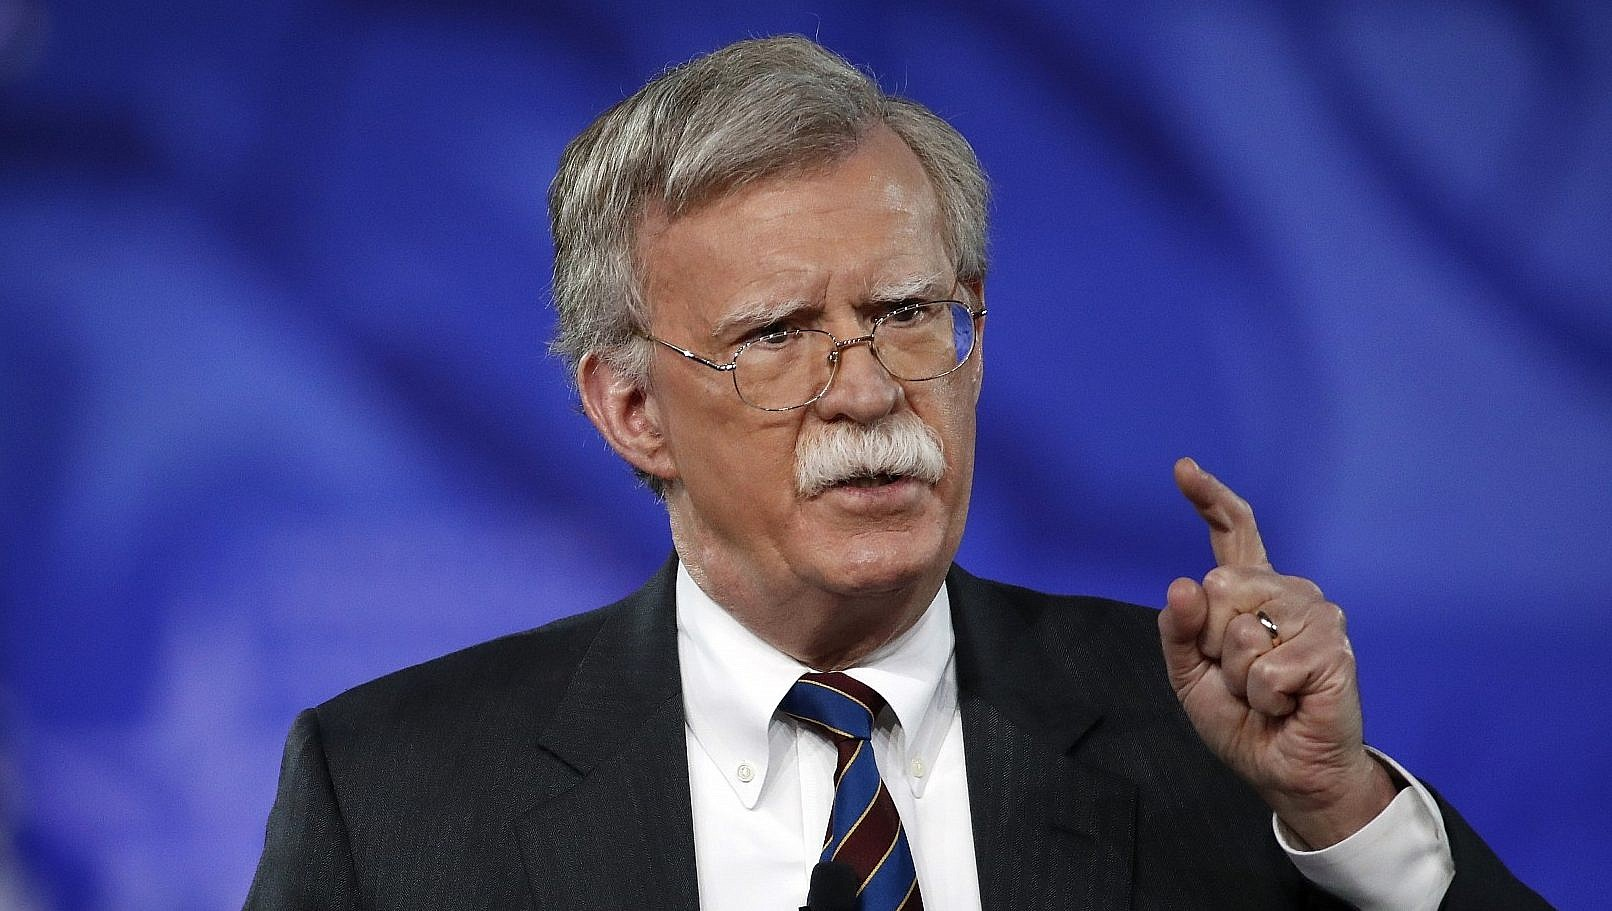 pulwama Attack, Pakistan, NSA, National Security Advisor, John Bolton, America, Ajit Doval, america News